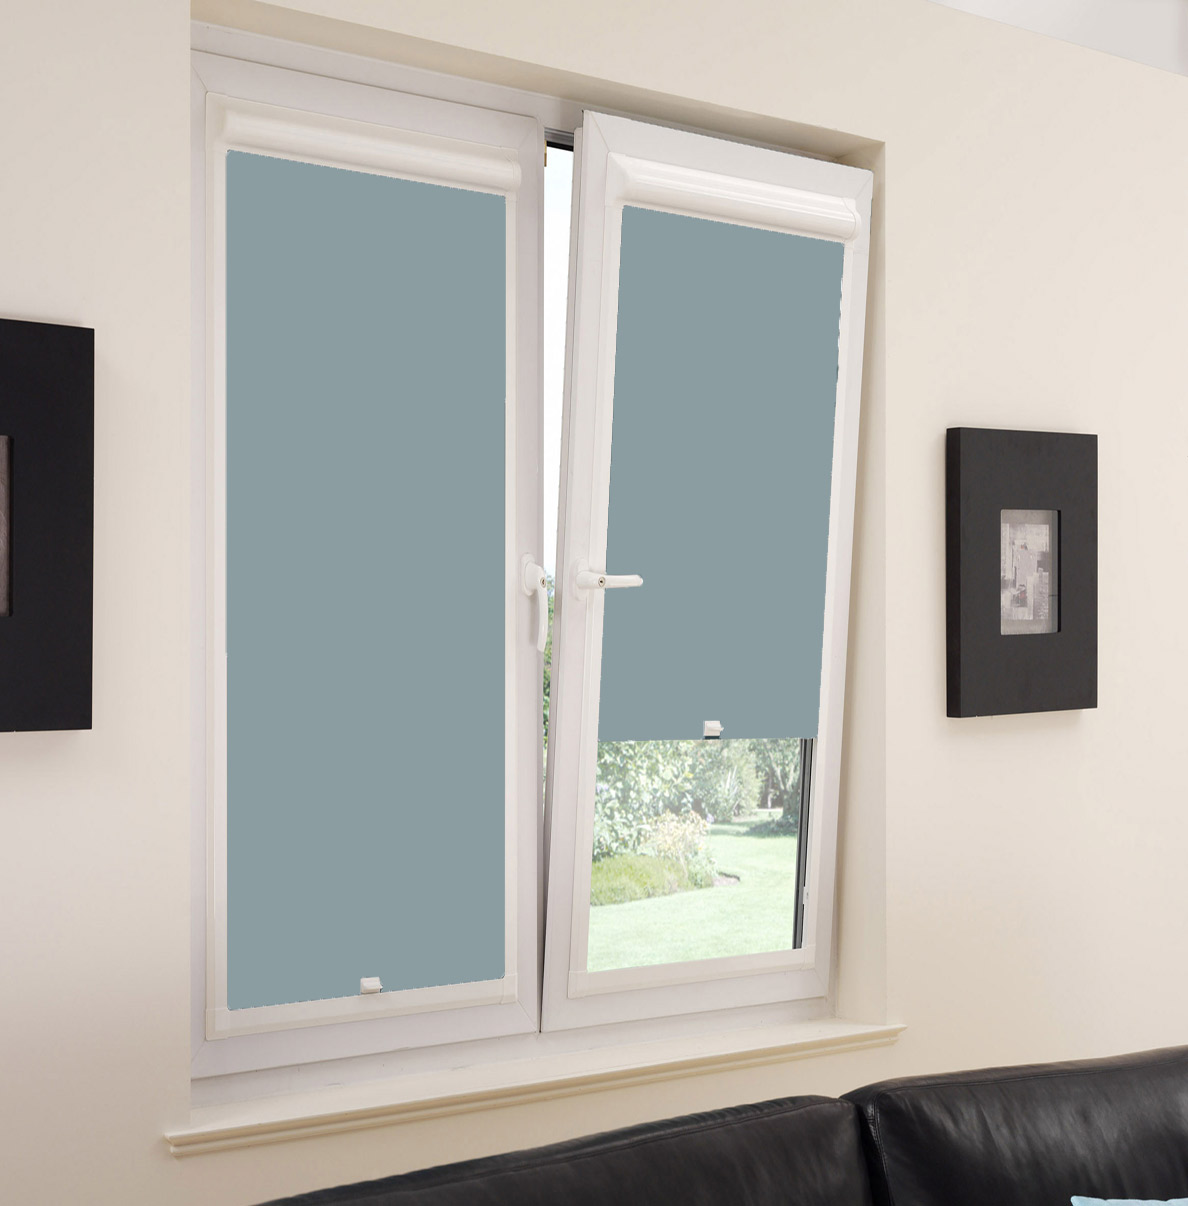 Bathroom Blinds Made To Measure Roller Blinds For The